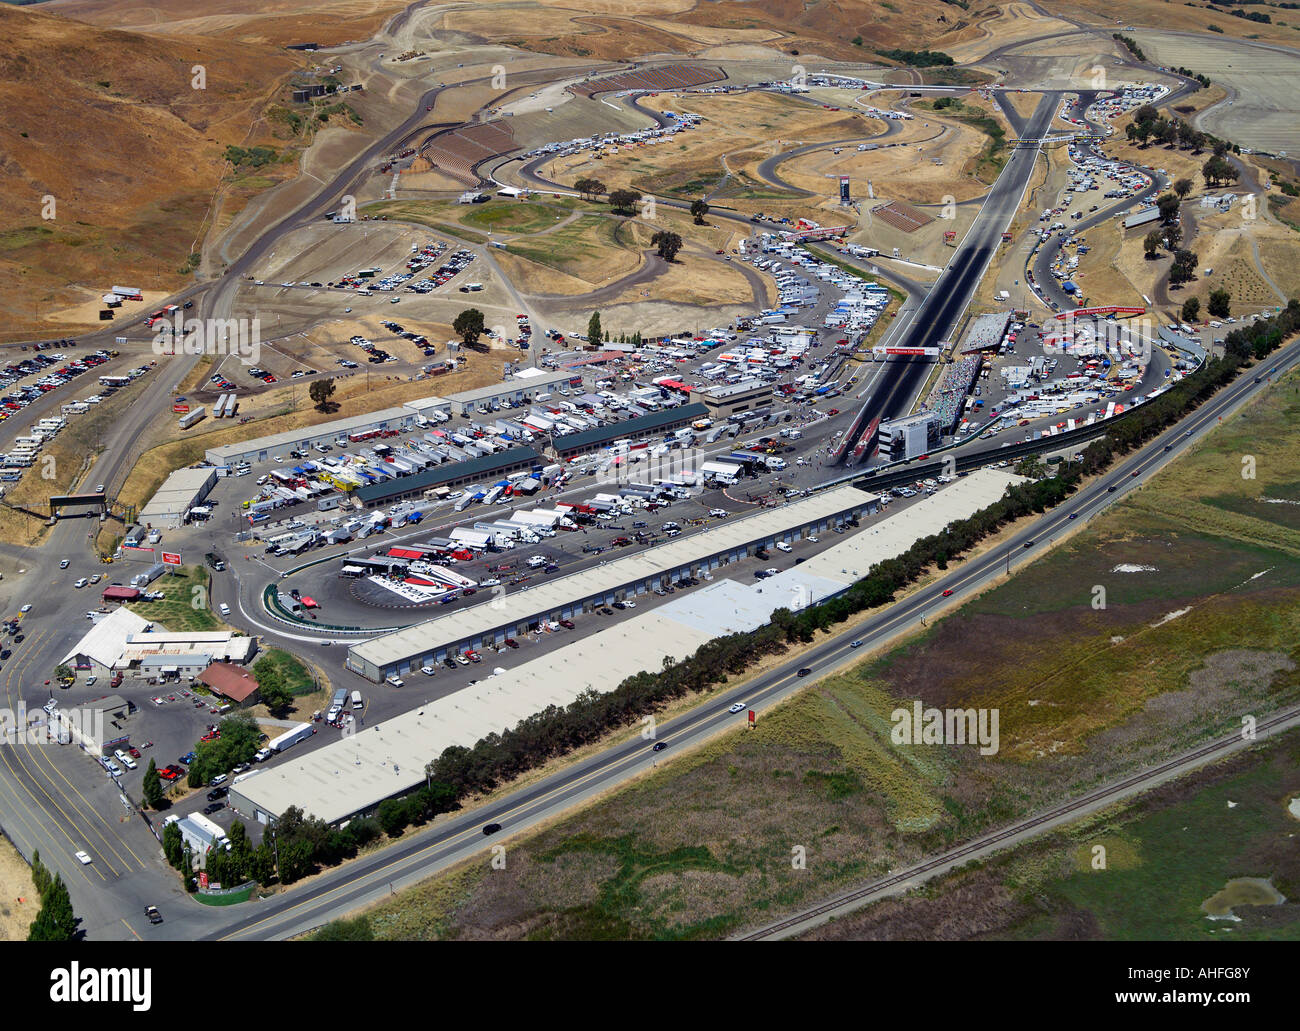 Aerial view above nascar race at infineon raceway sears point sonoma county california stock image